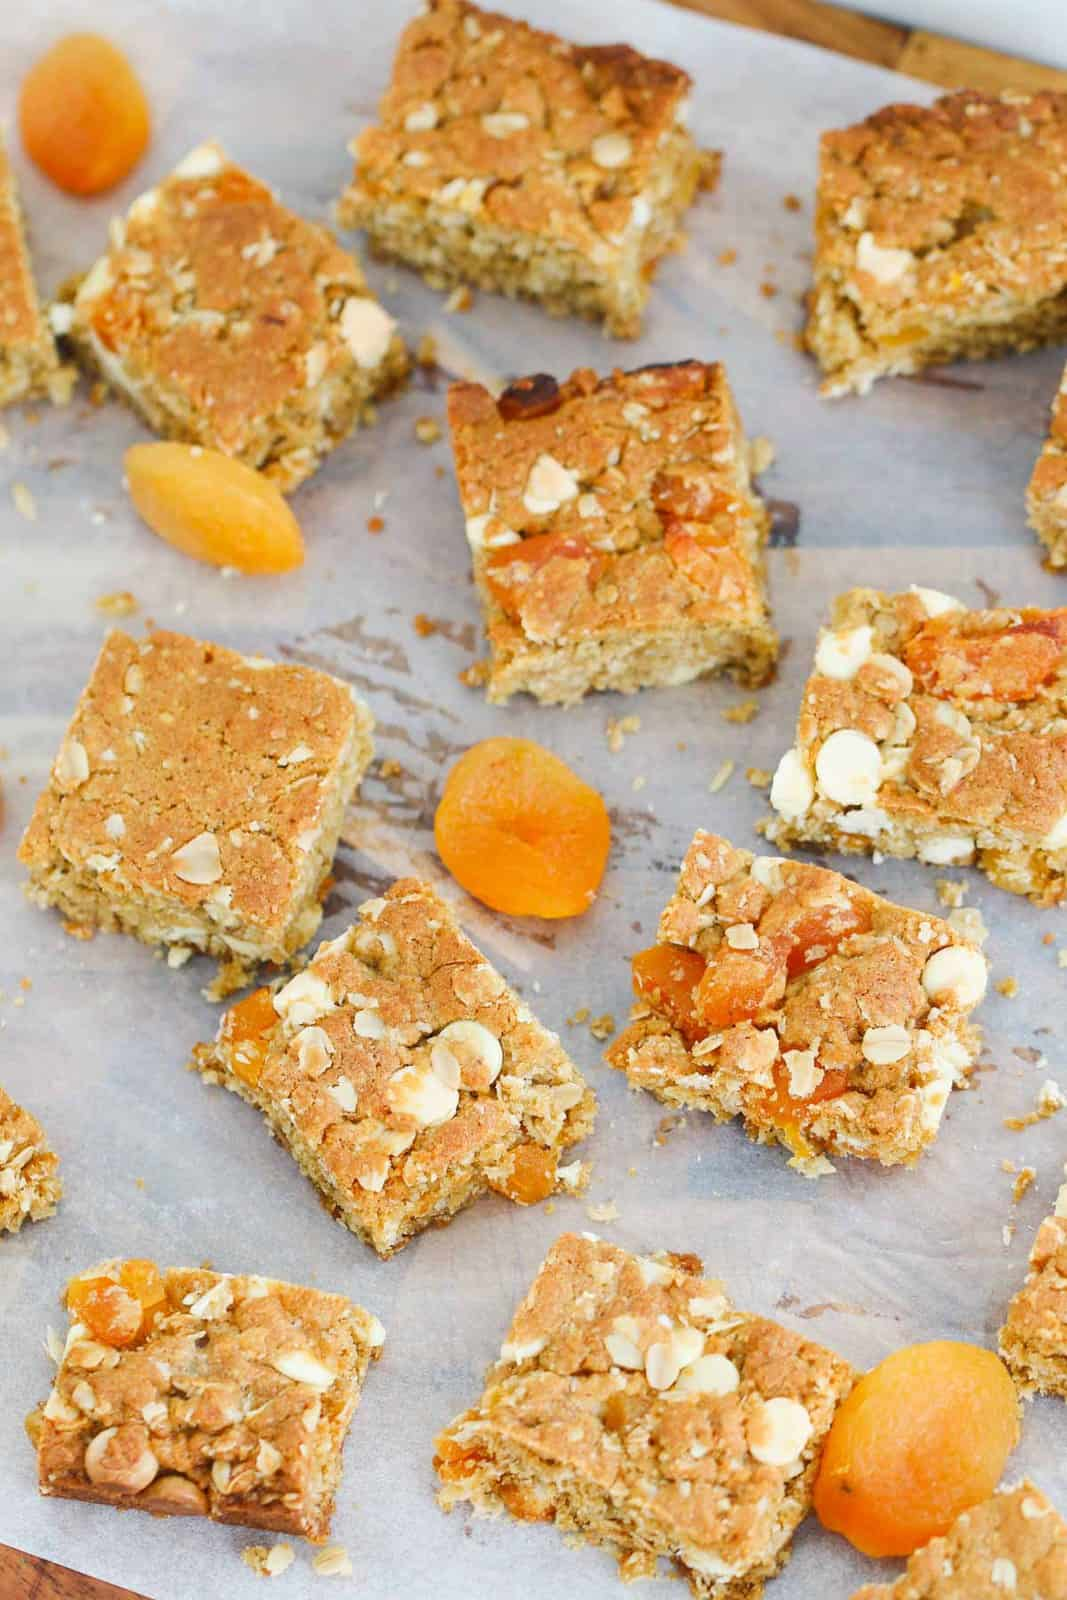 Pieces of apricot oat slice cut into squares on a piece of paper with dried apricots